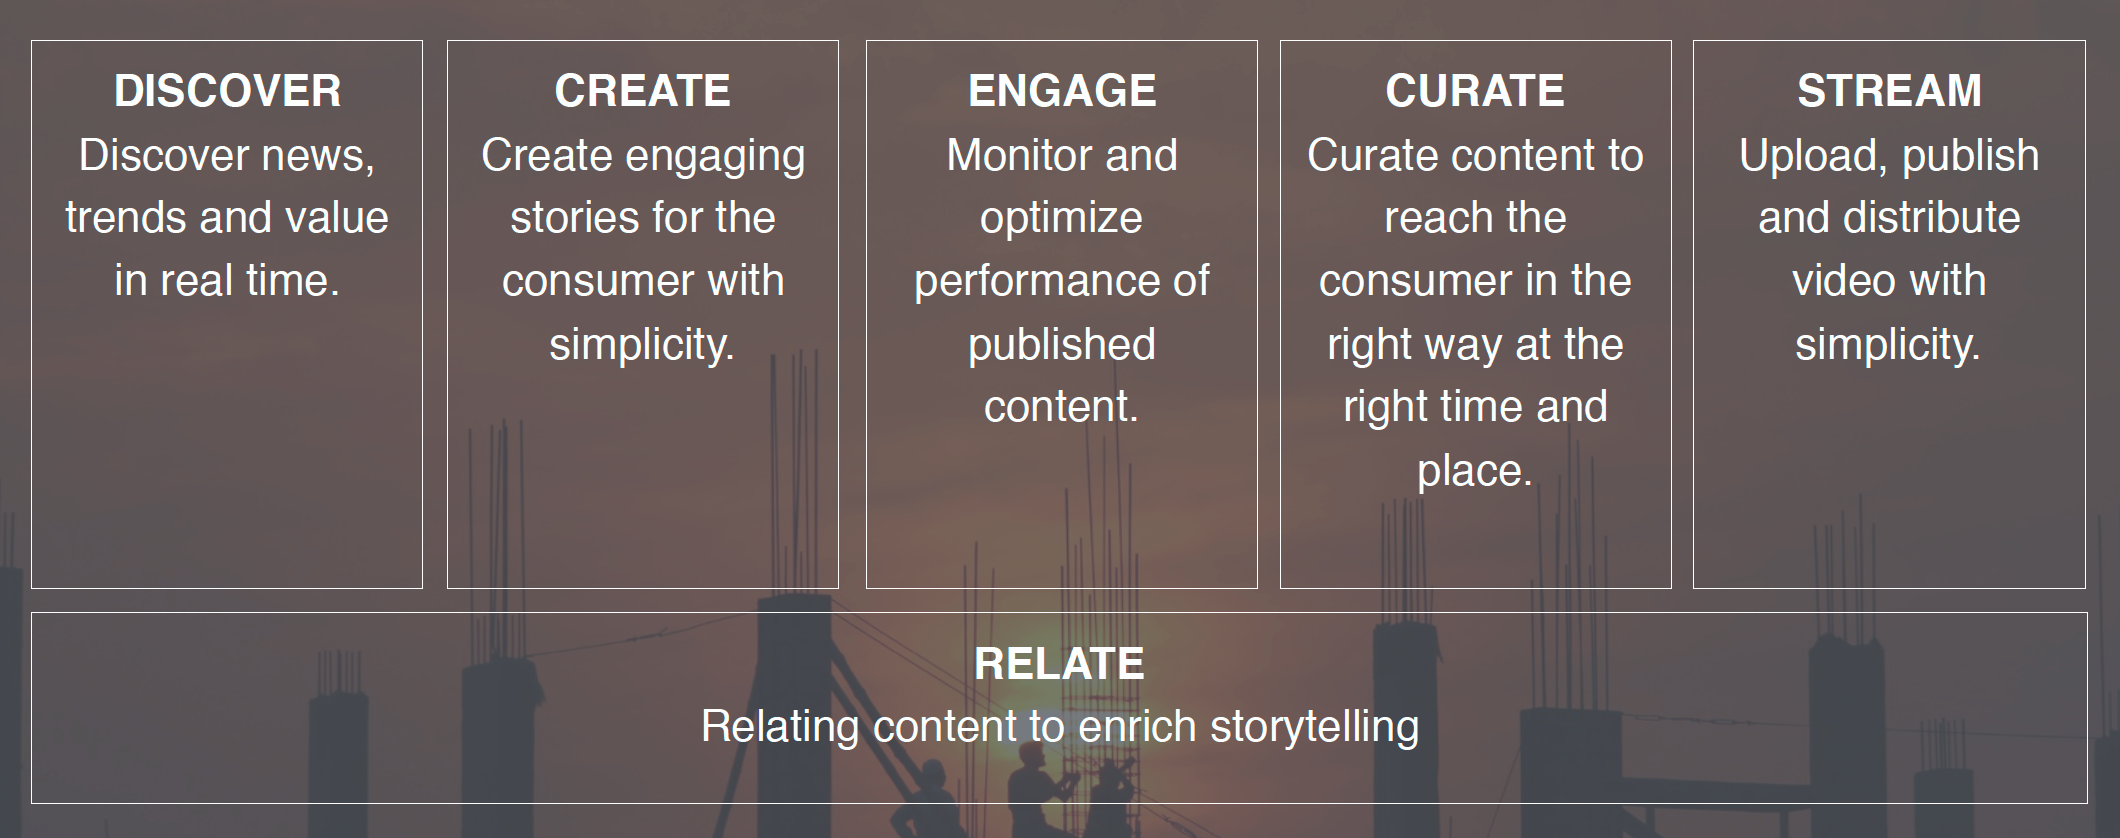 The Creation Suite is the core component of Schibsted Publishing Platform